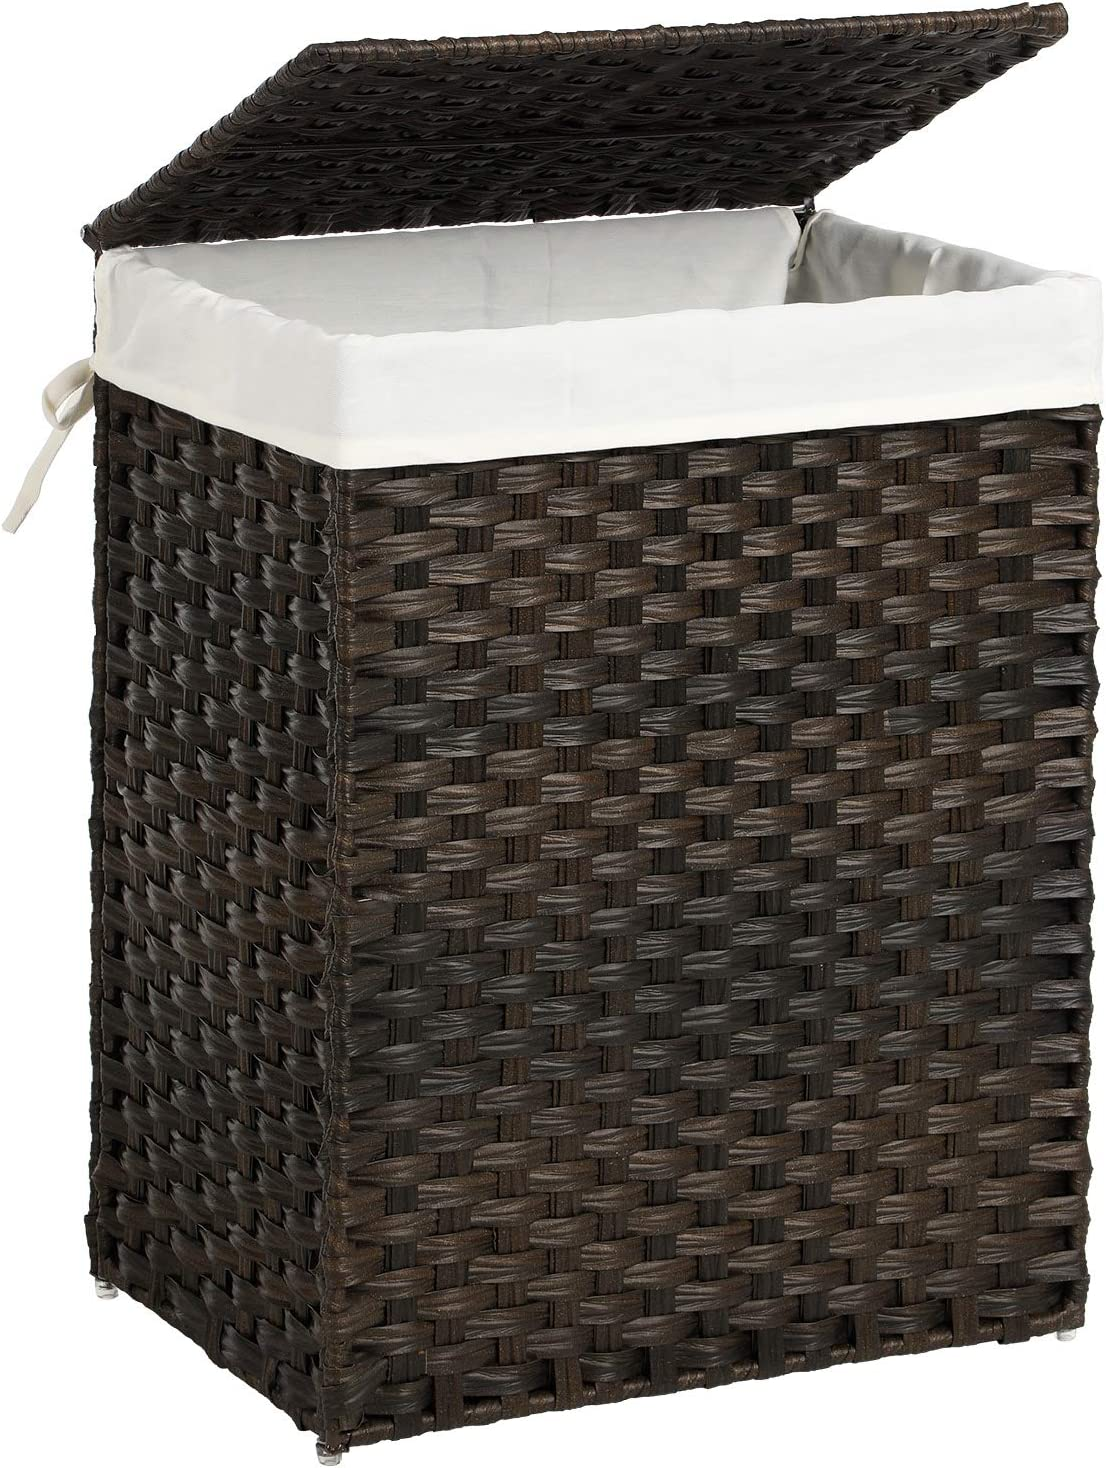 SONGMICS Handwoven Laundry Hamper, Synthetic Rattan Laundry Basket with Removable Liner Bag, Clothes Hamper with Handles for Laundry Room, Brown ULCB051K02